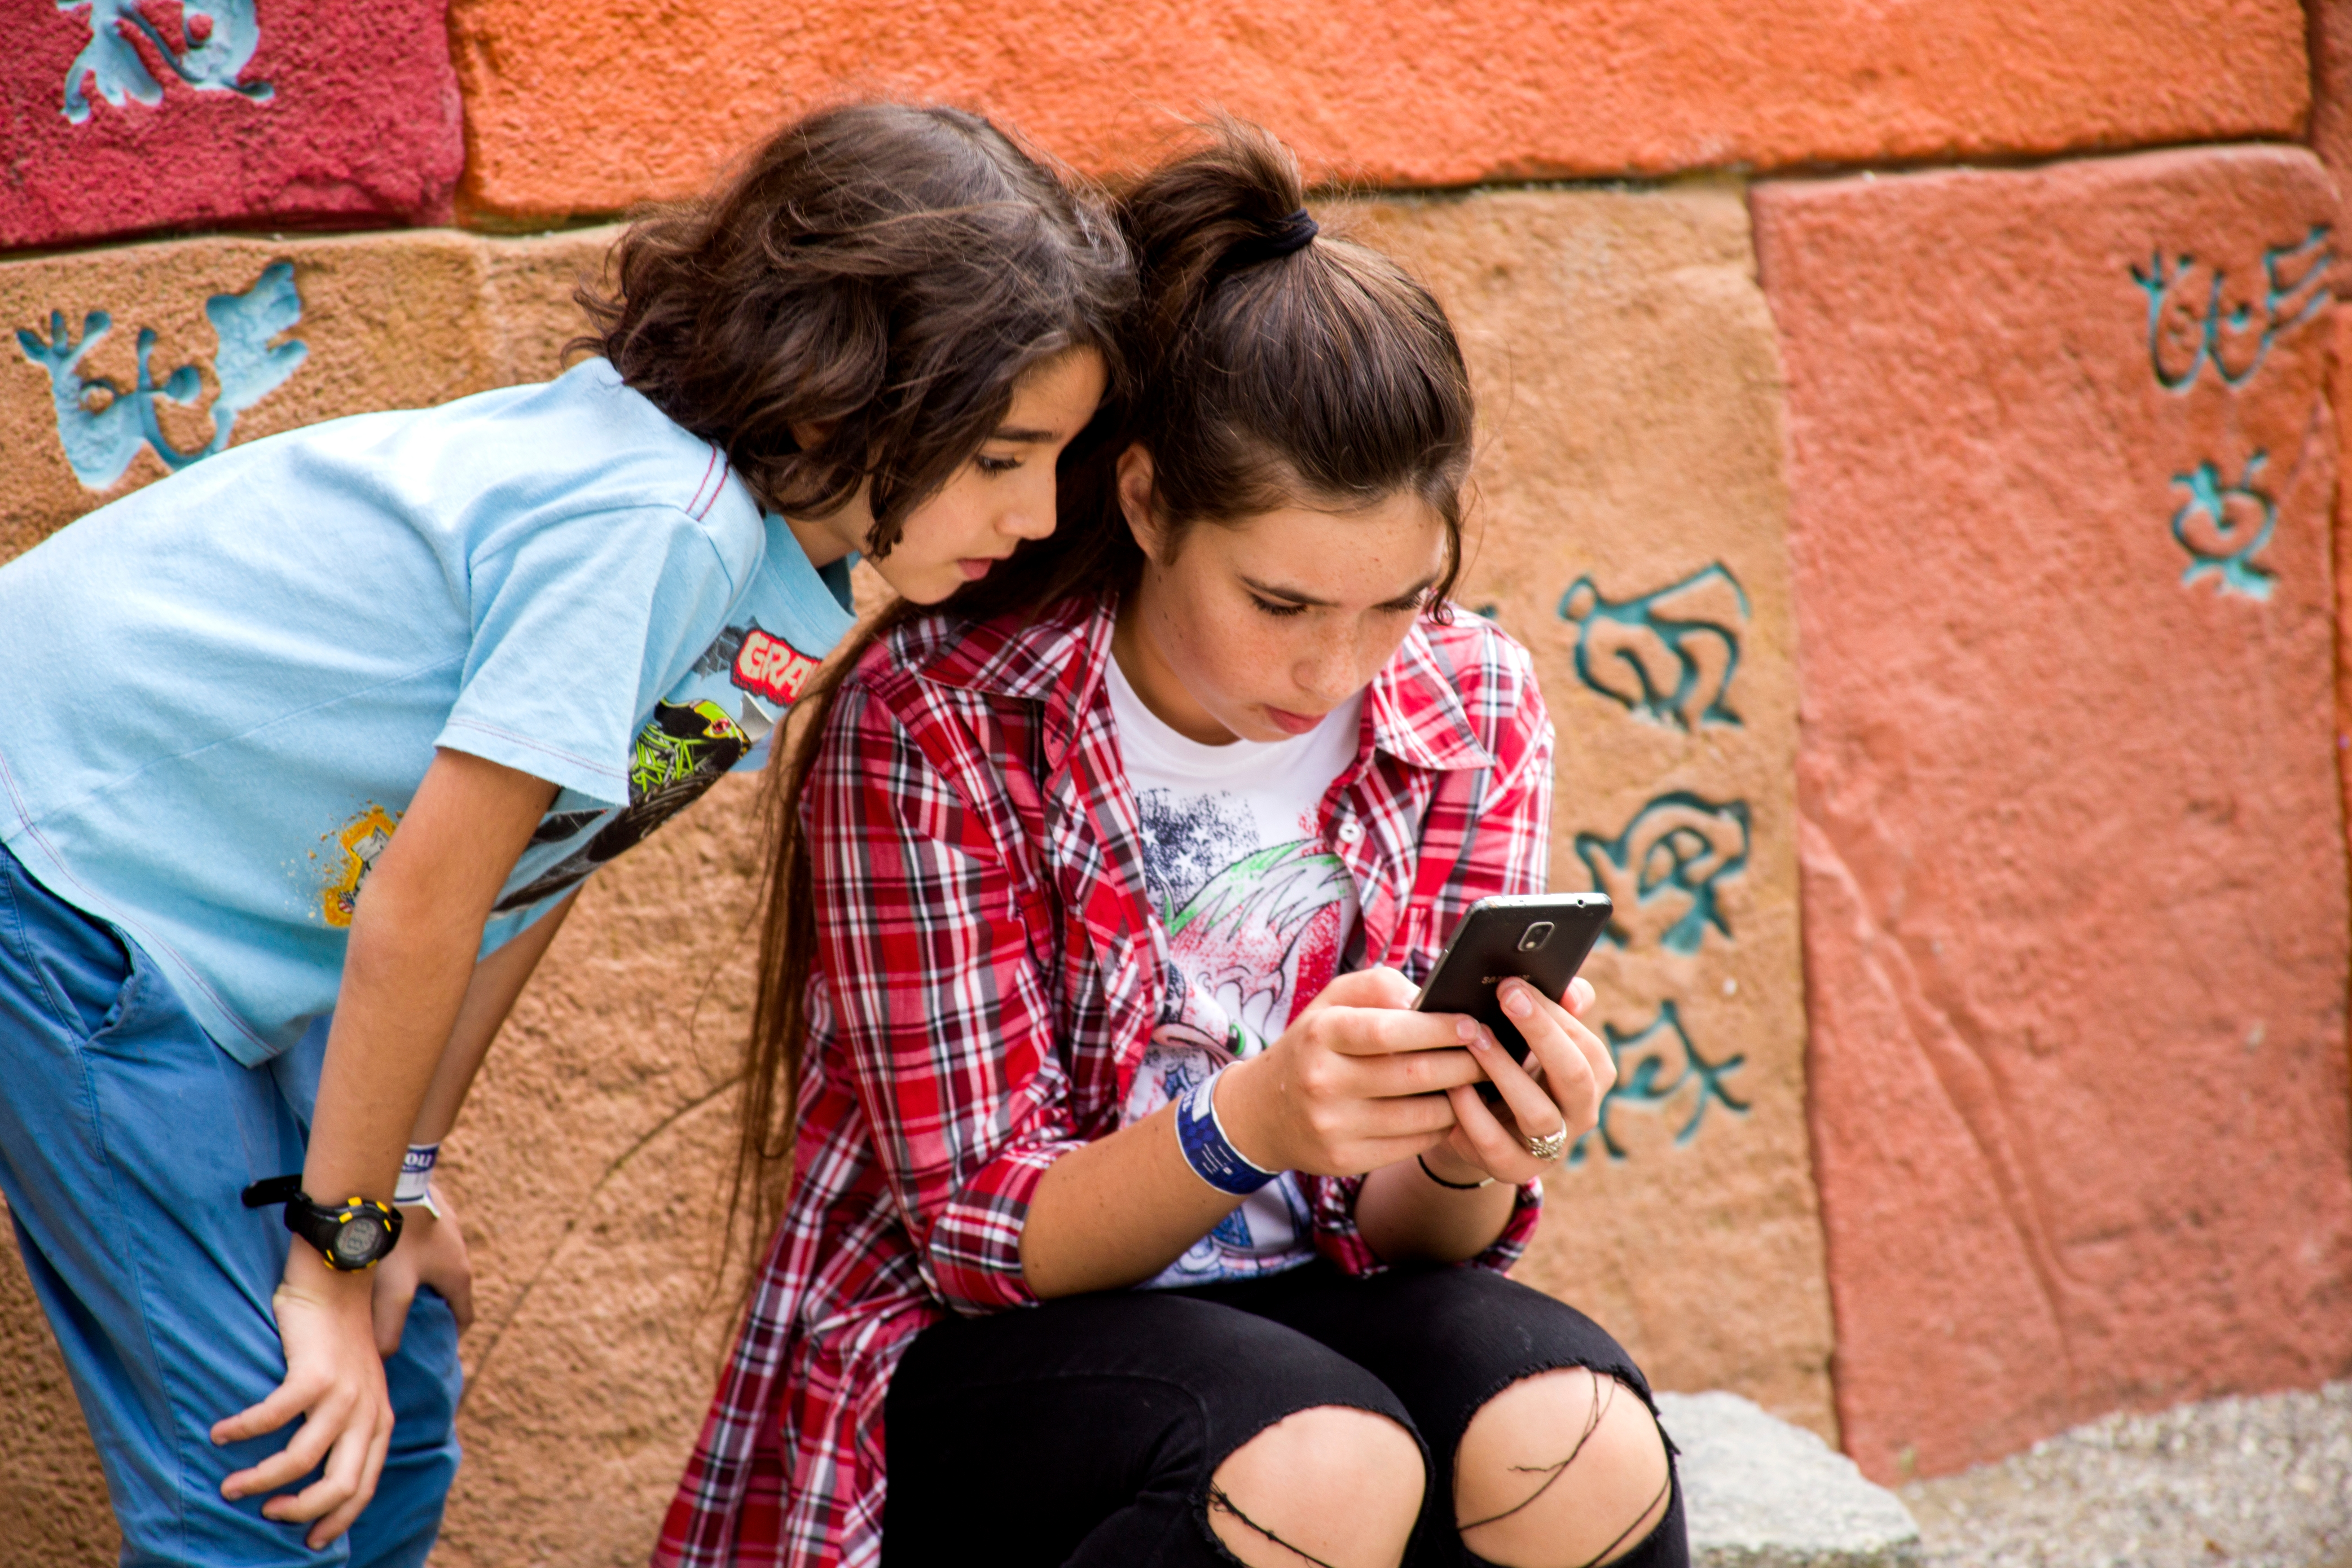 Teen sister and tween brother view smartphone near colorful wall.